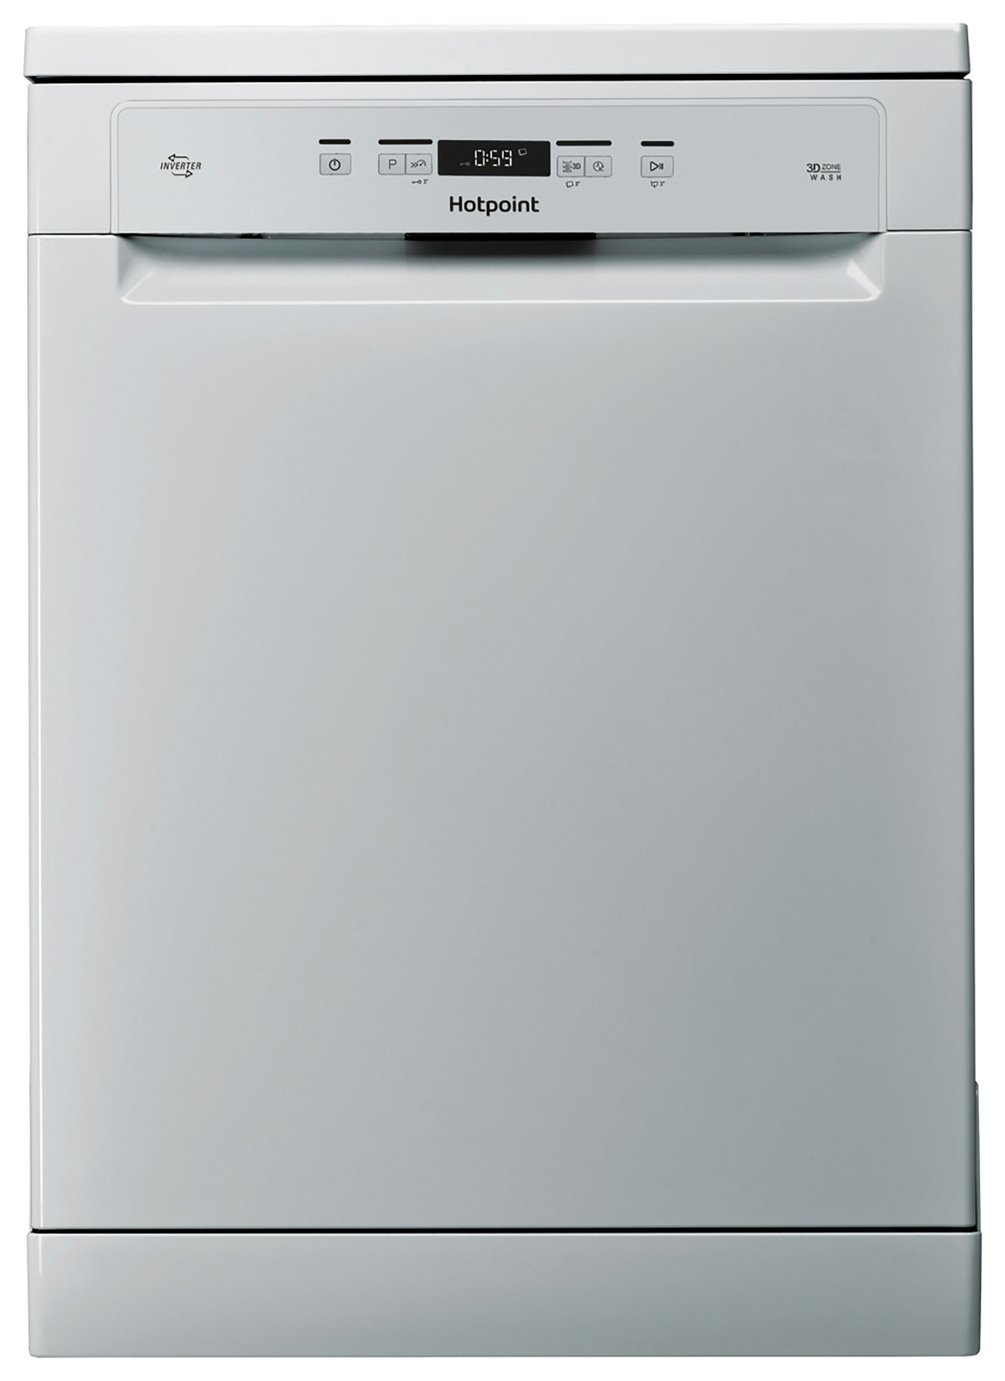 Hotpoint HFC3C26W Full Size Dishwasher - Silver